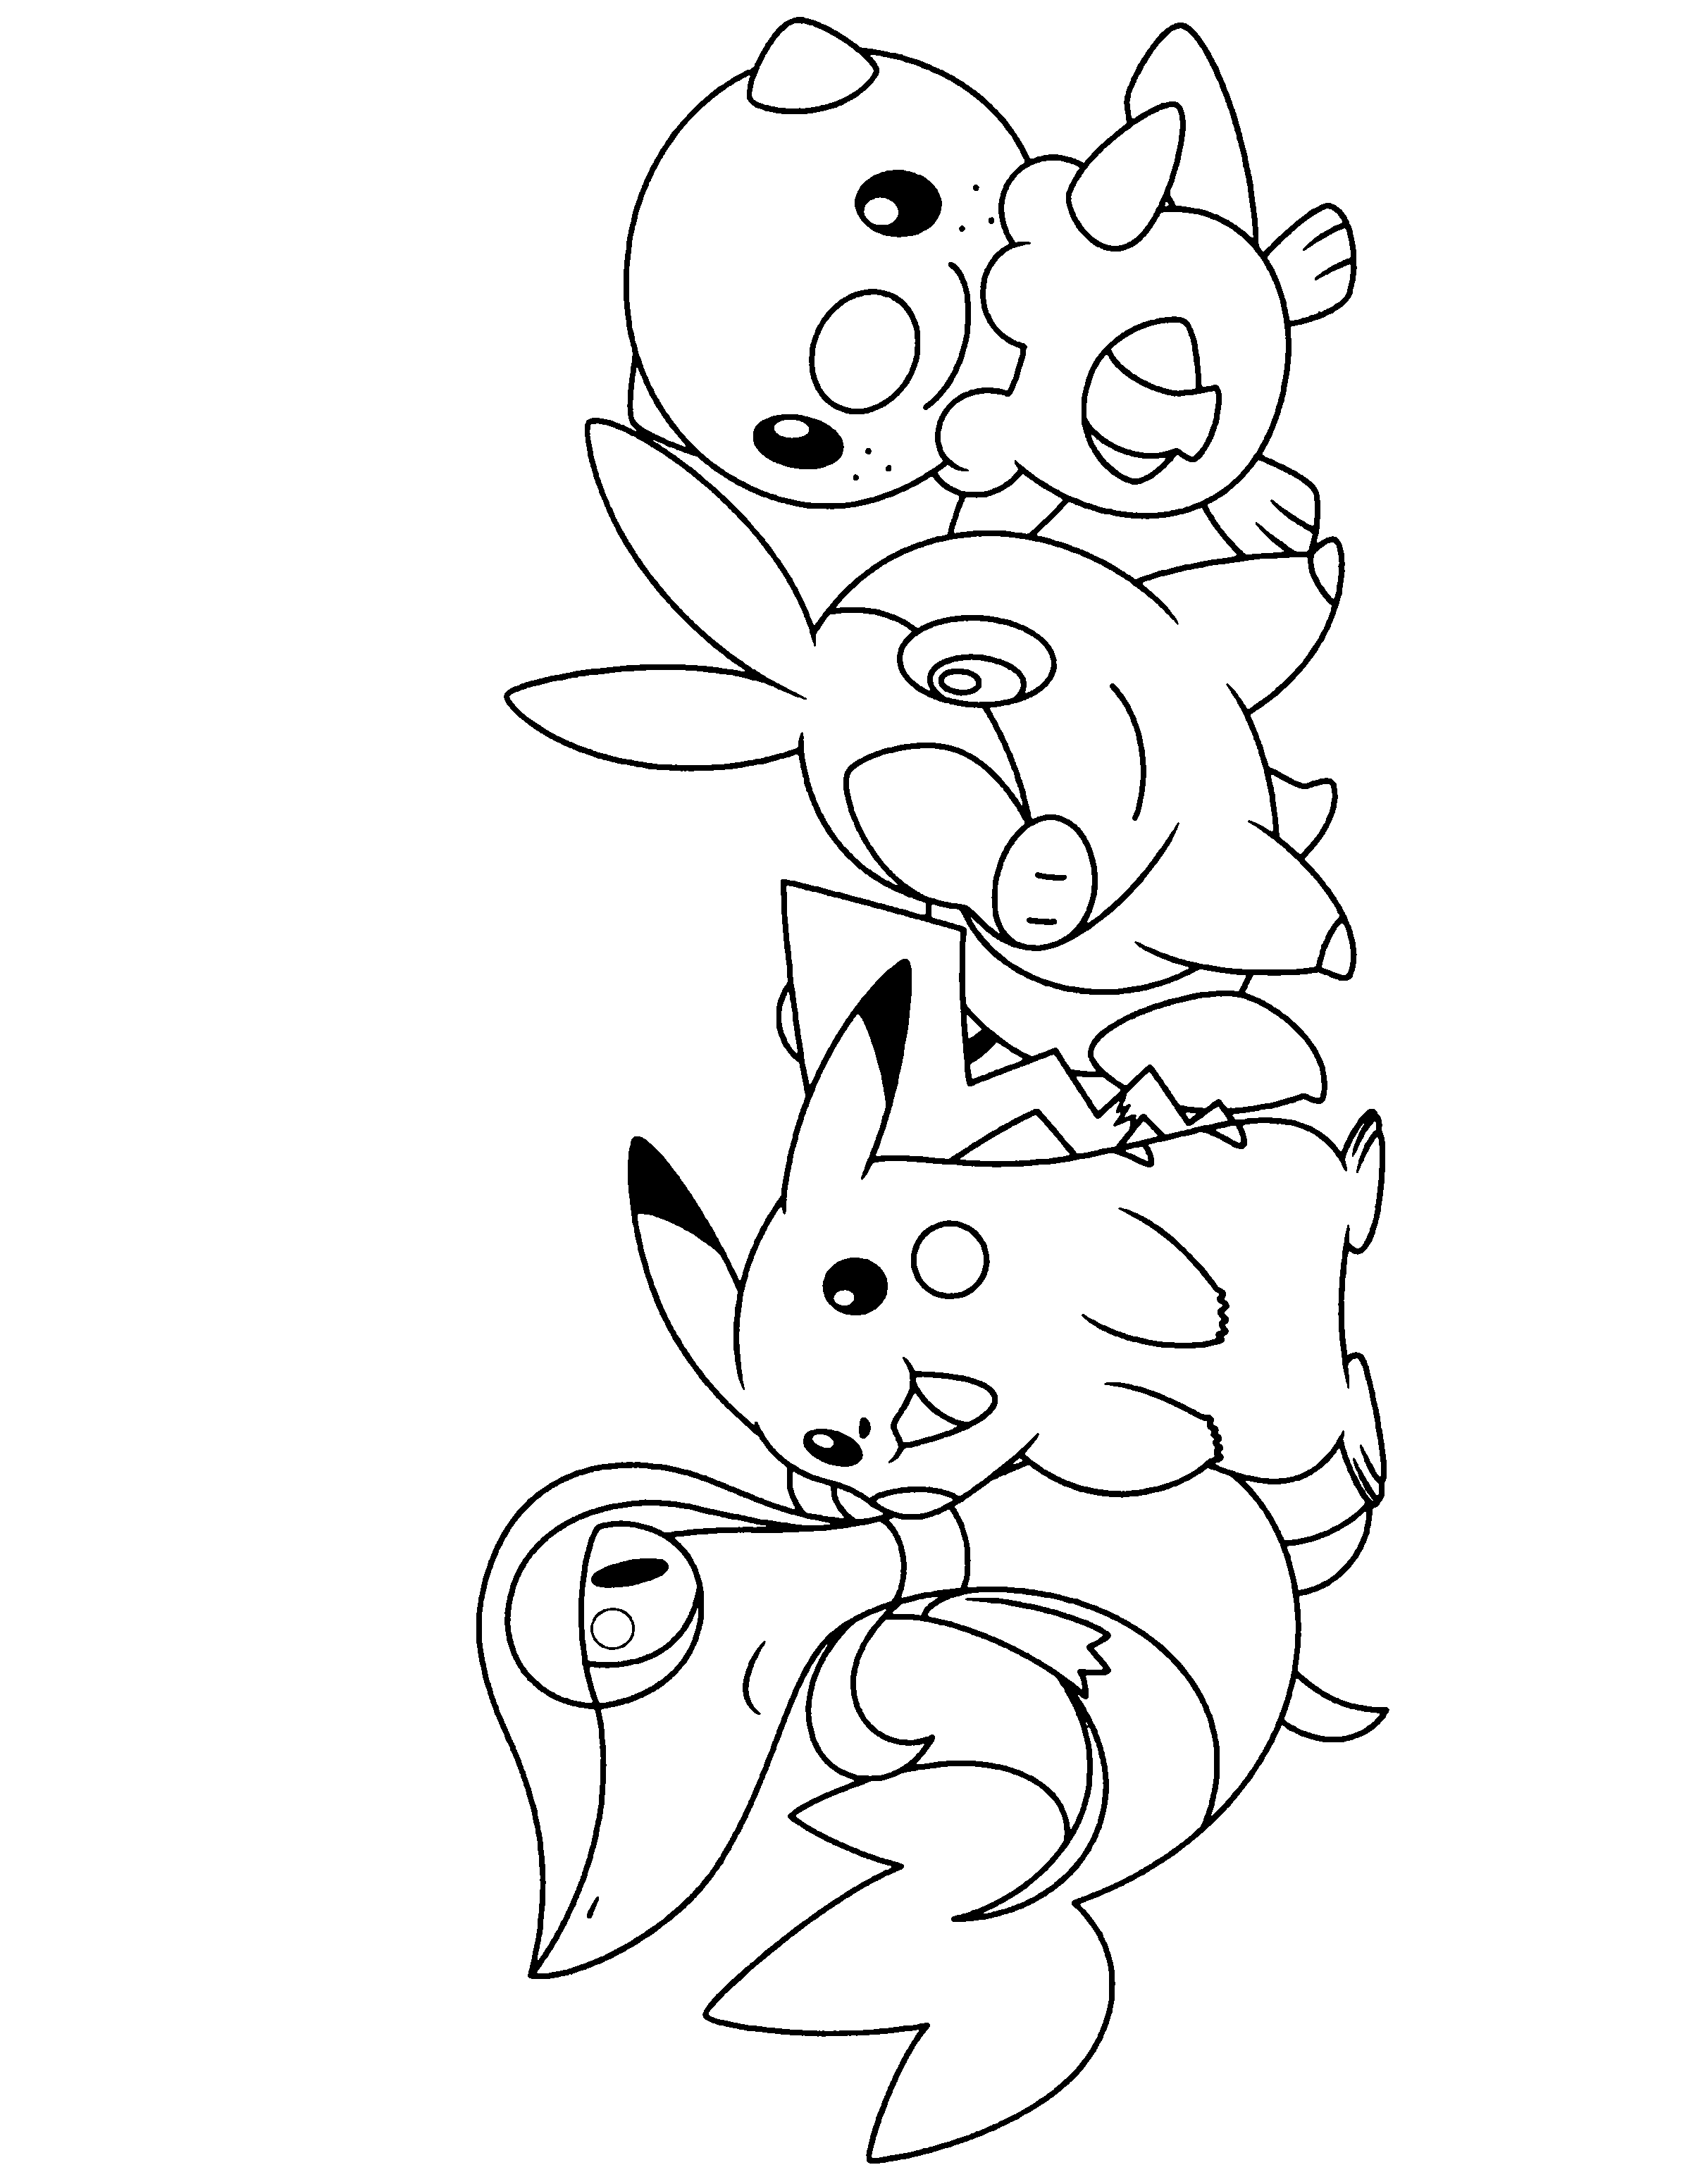 Pokemon Black And White Printable Coloring Pages Pokemon Coloring Pages Pokemon Coloring Pokemon Black And White